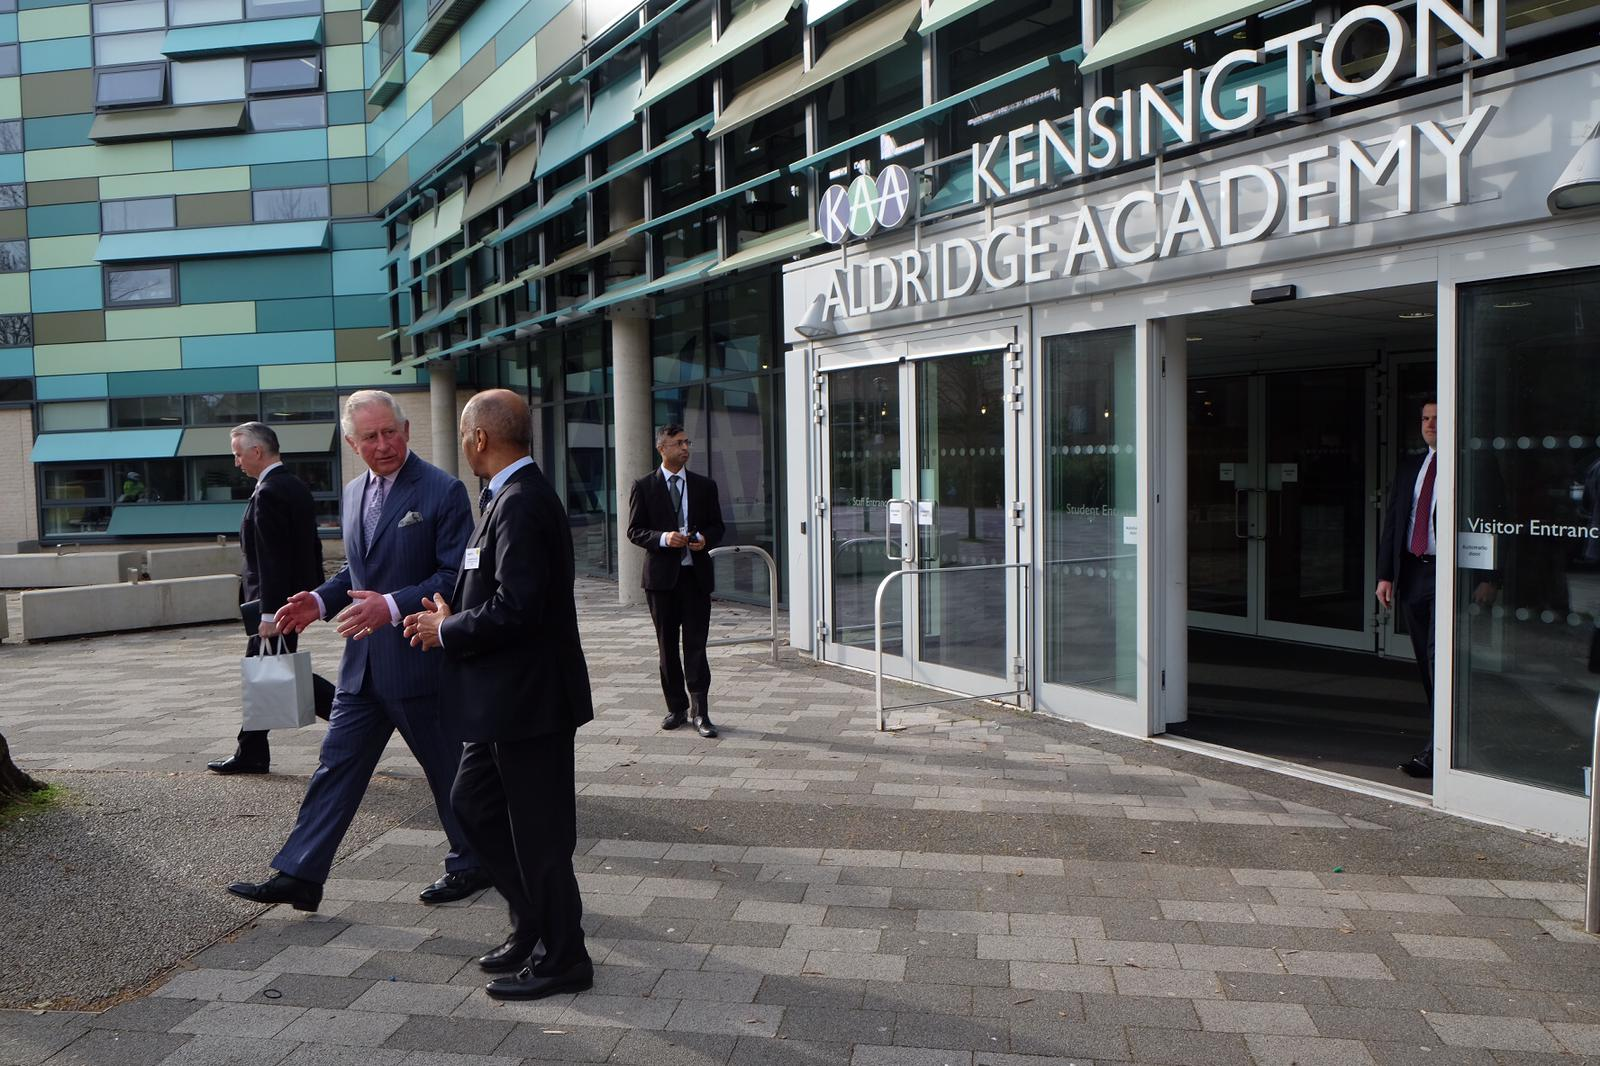 The Prince of Wales visits the Kensington Aldridge Academy in Kensington